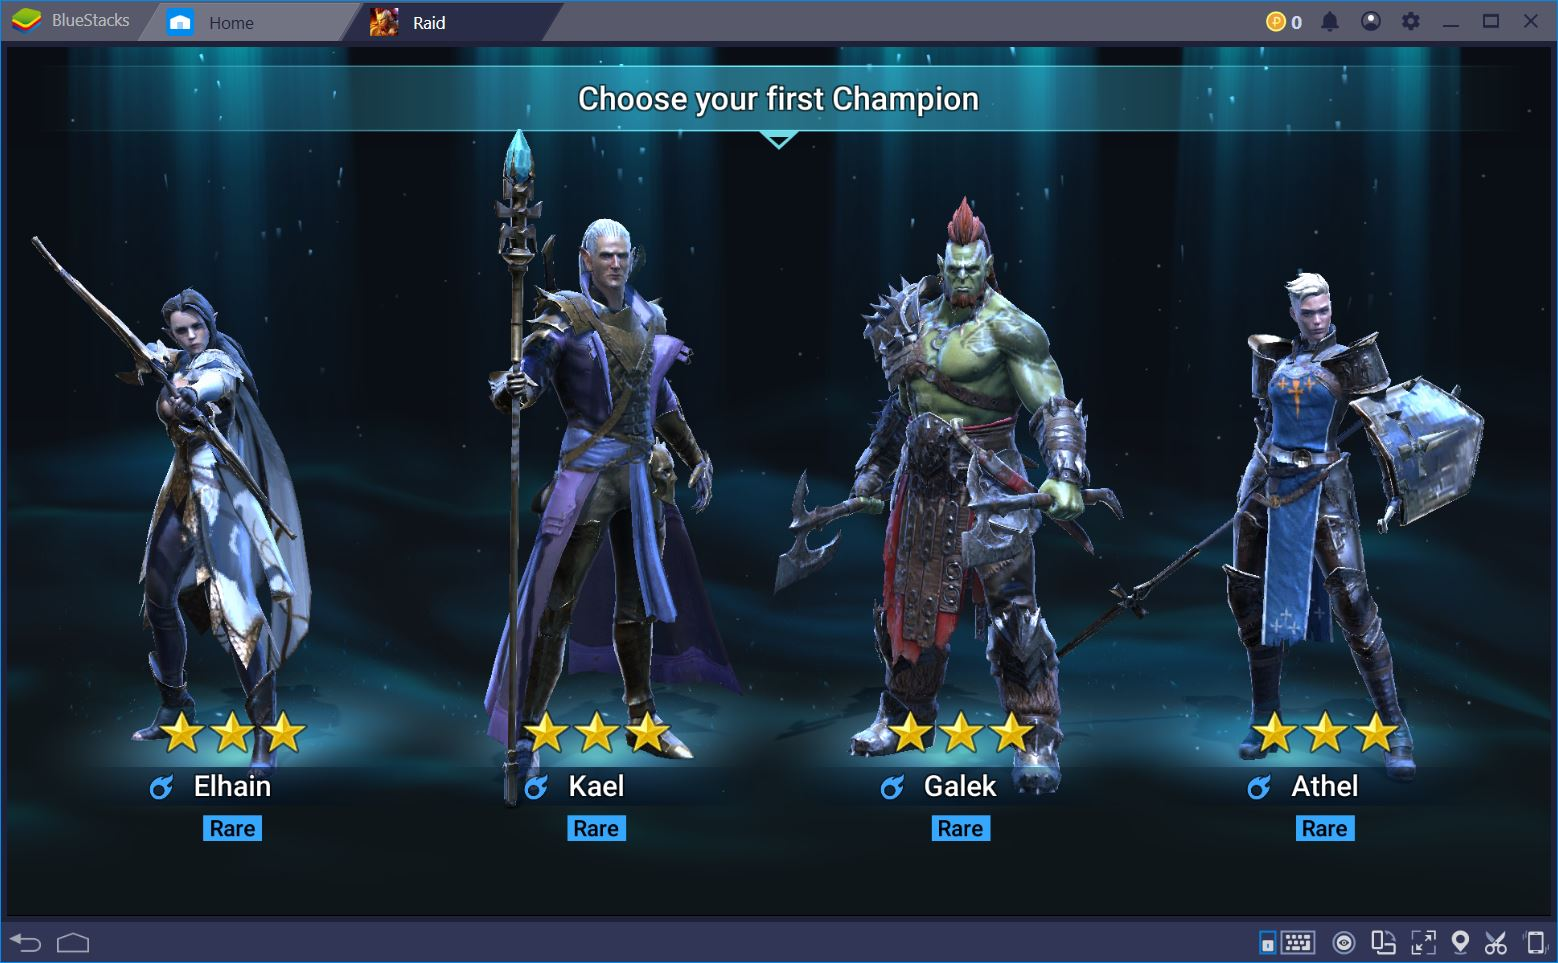 RAID: Shadow Legends on PC – The Best First Champion and Early Game Setup